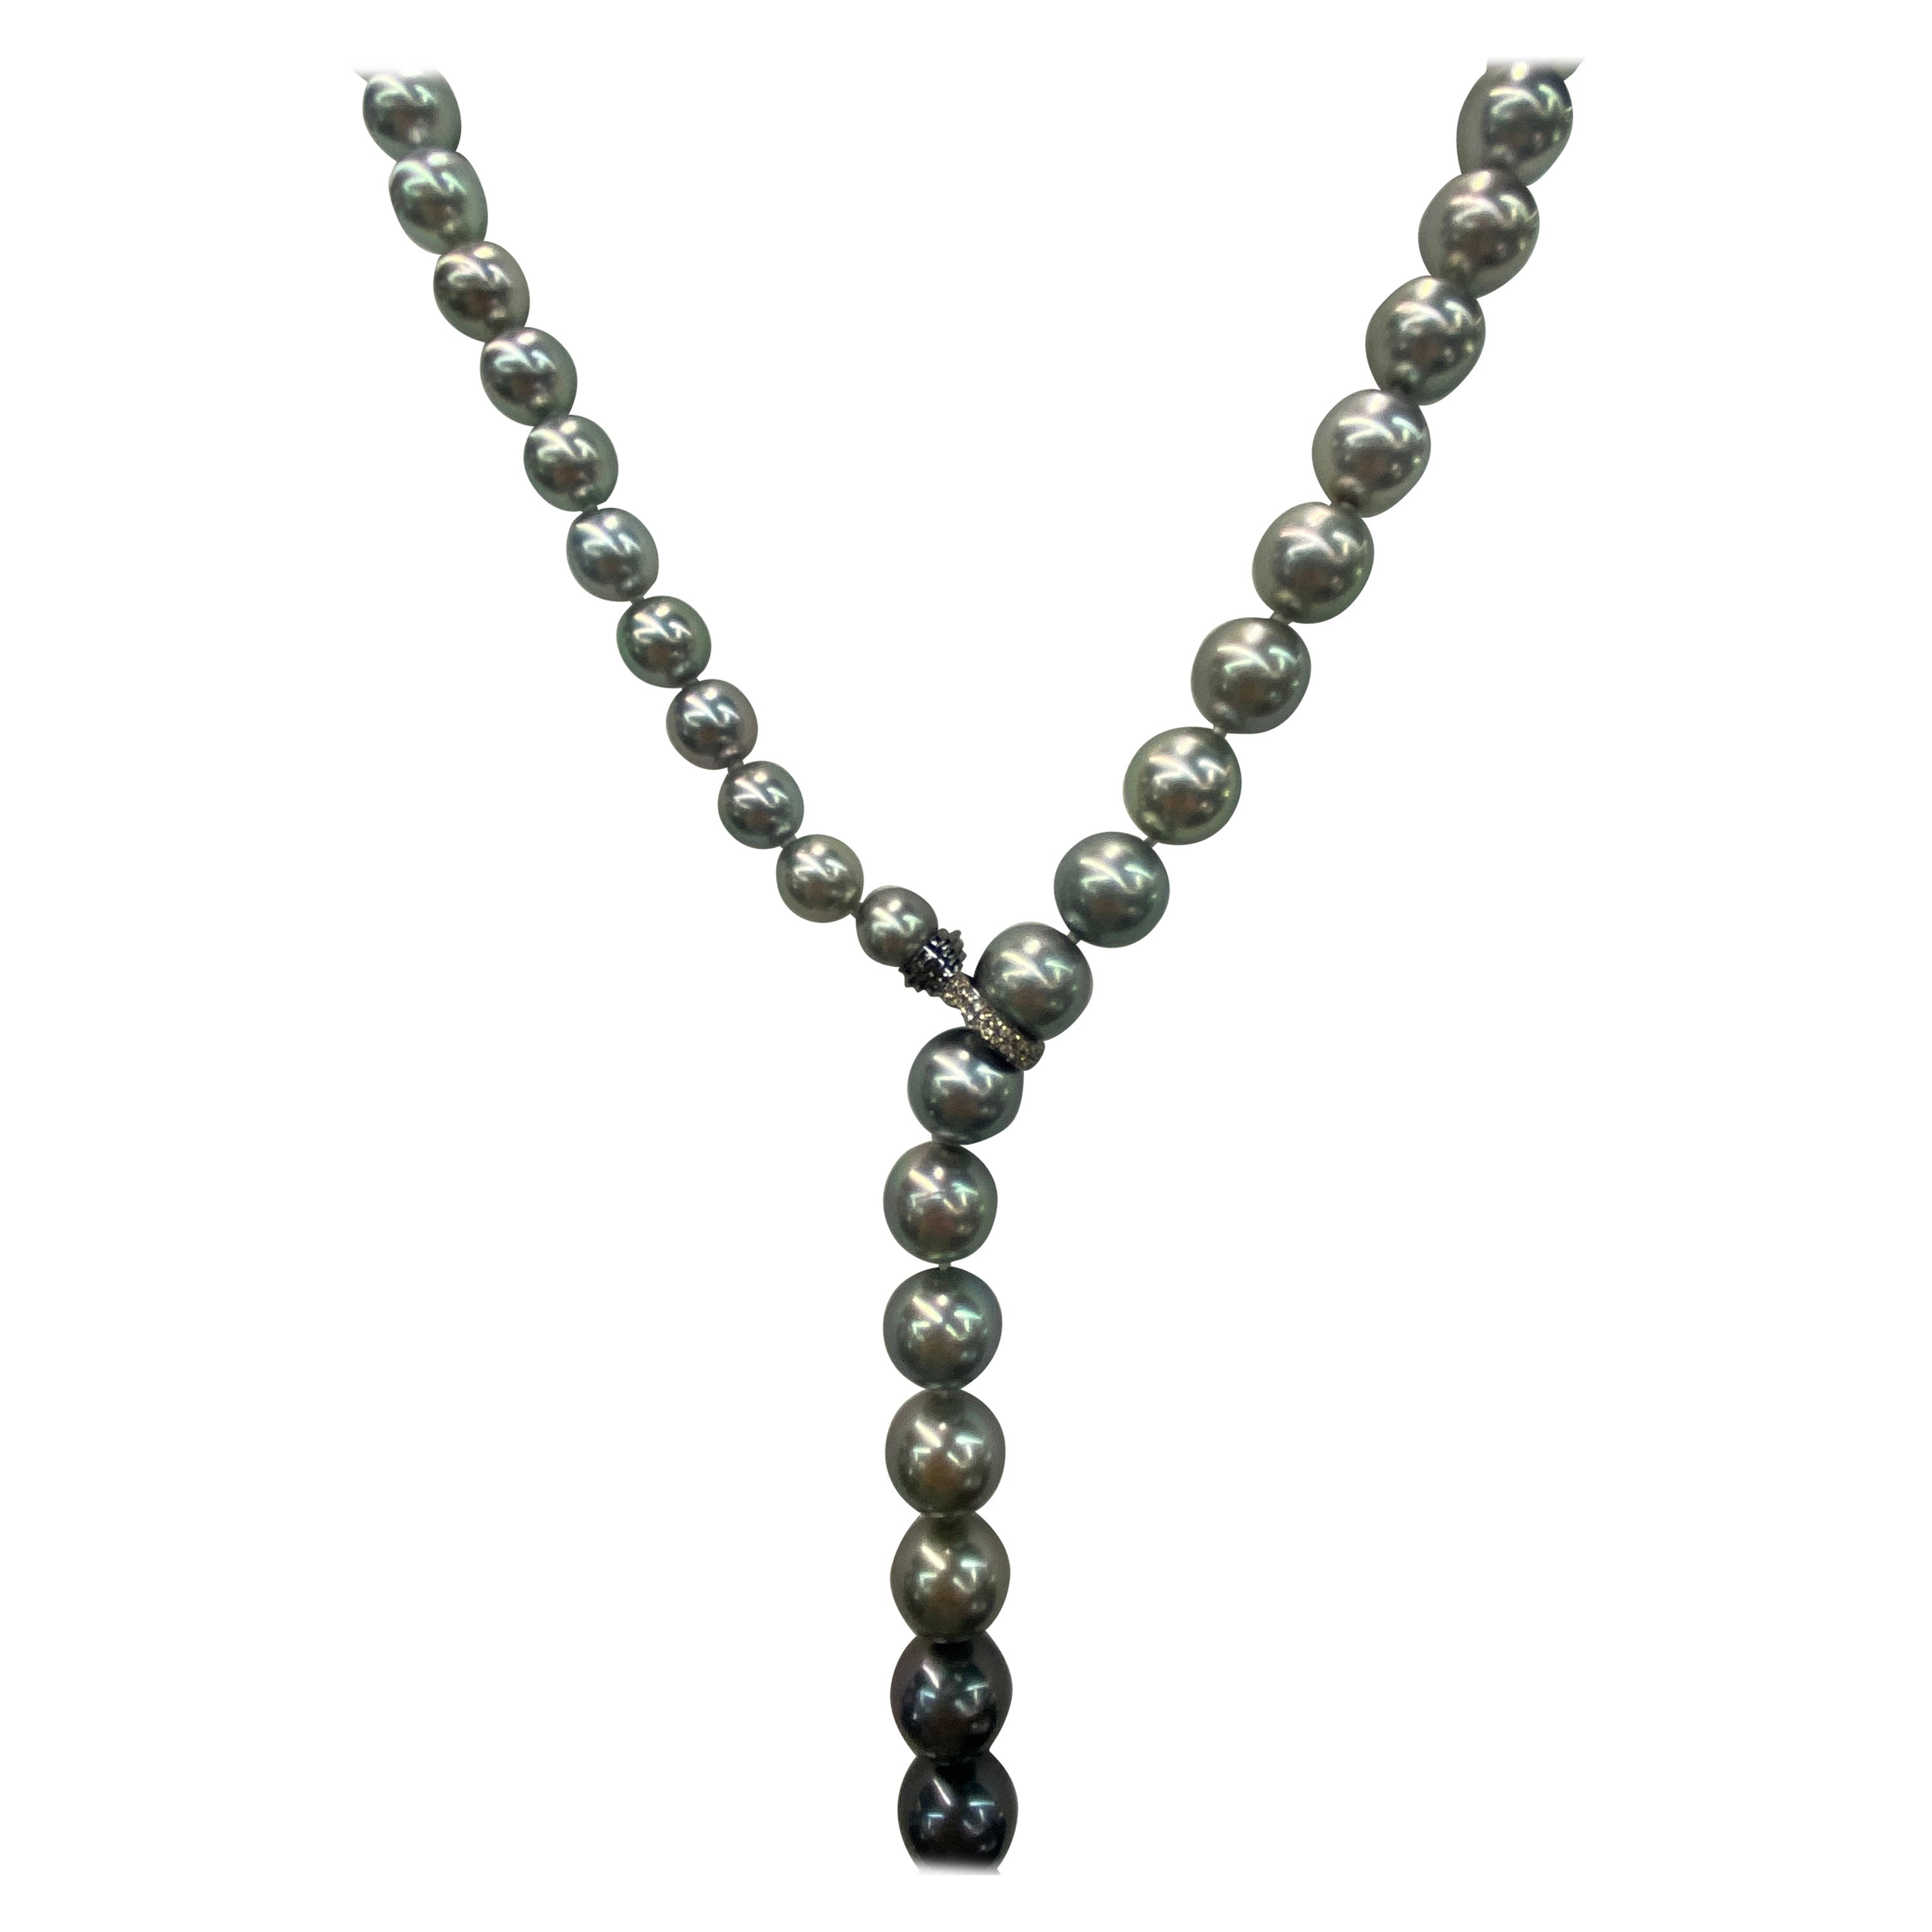 HARBOR D. Ombre Tahitian Diamond Pearl Necklace 8-13.9 MM